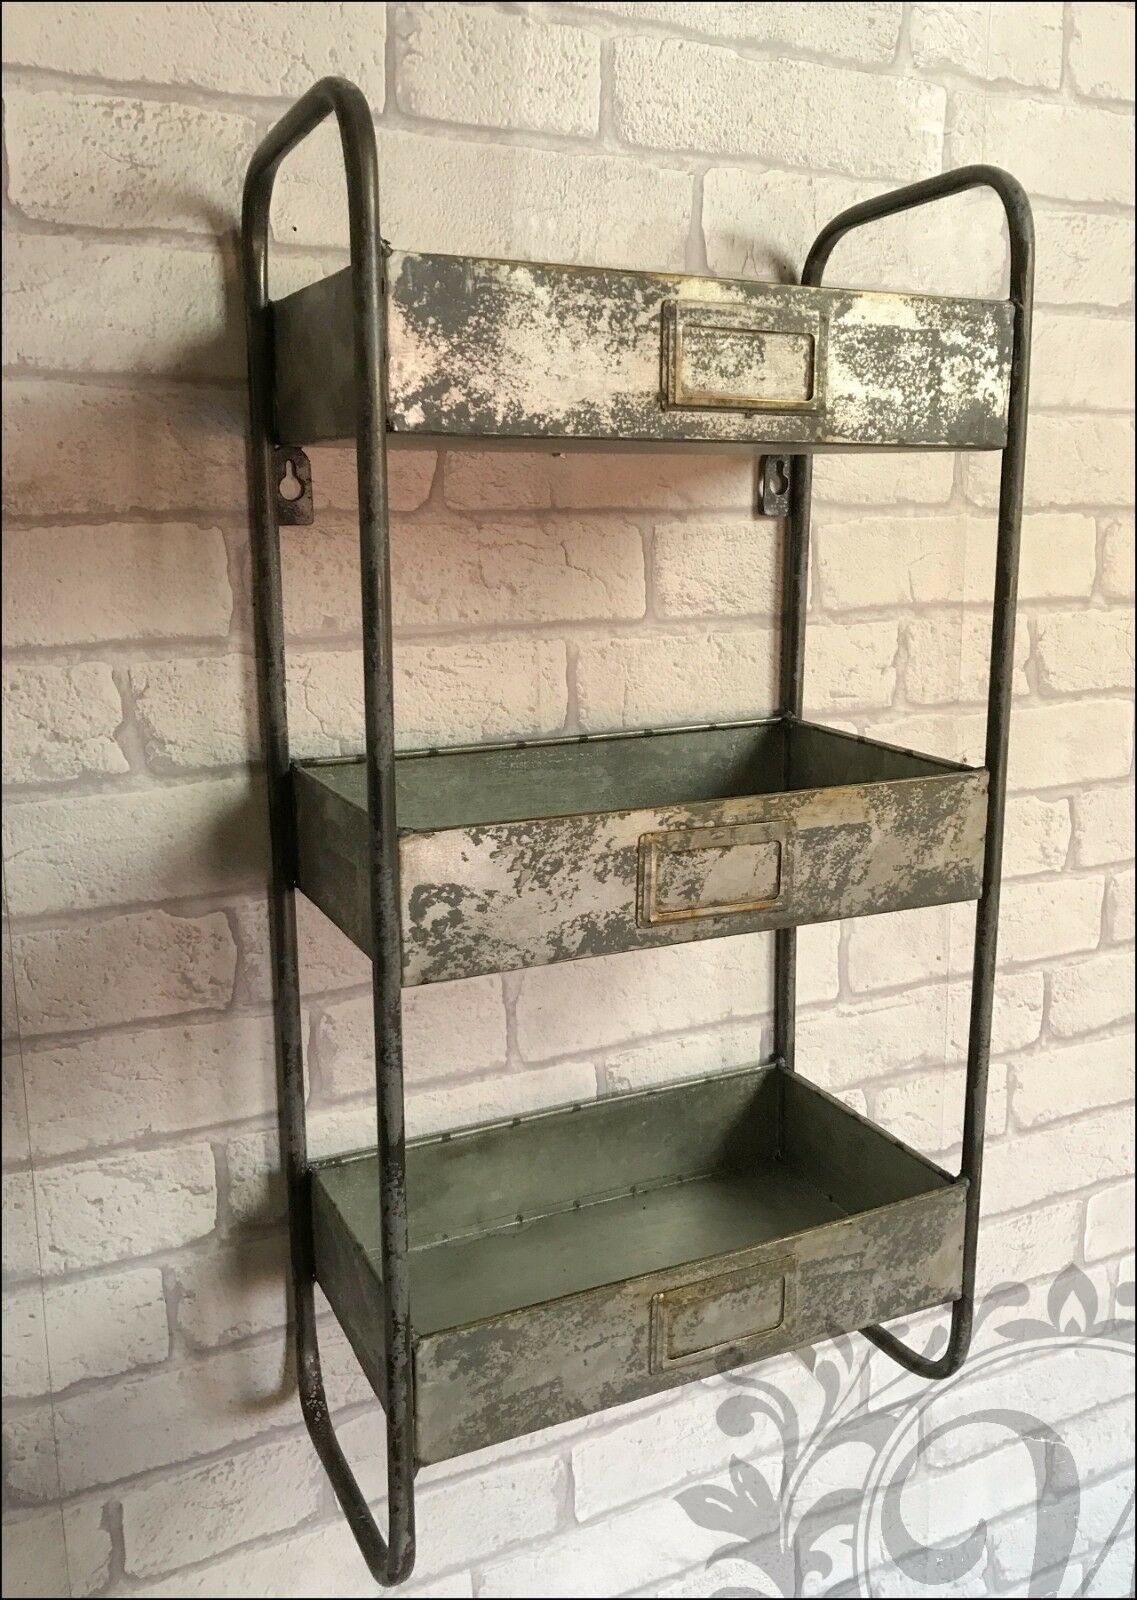 retro vintage industrial style metal shelves shelf storage